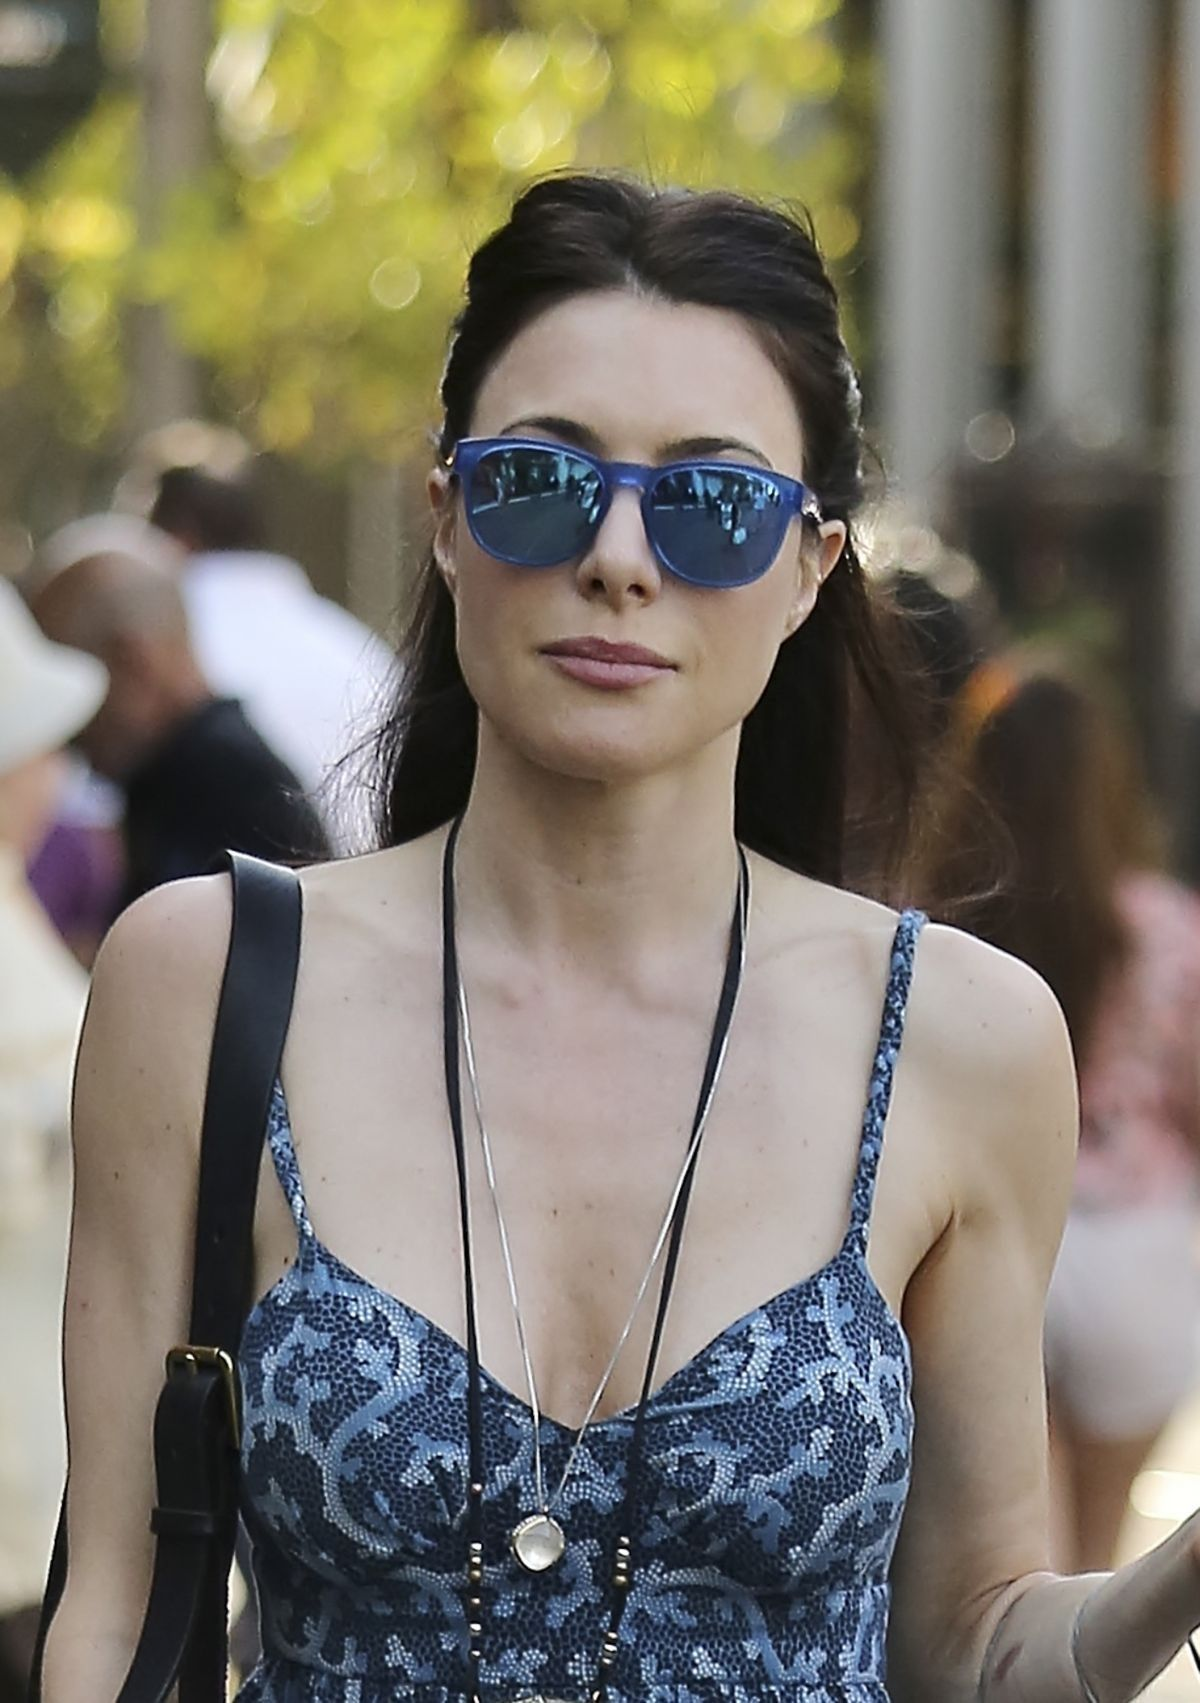 Jaime Murray nudes (95 pictures) Boobs, 2019, braless